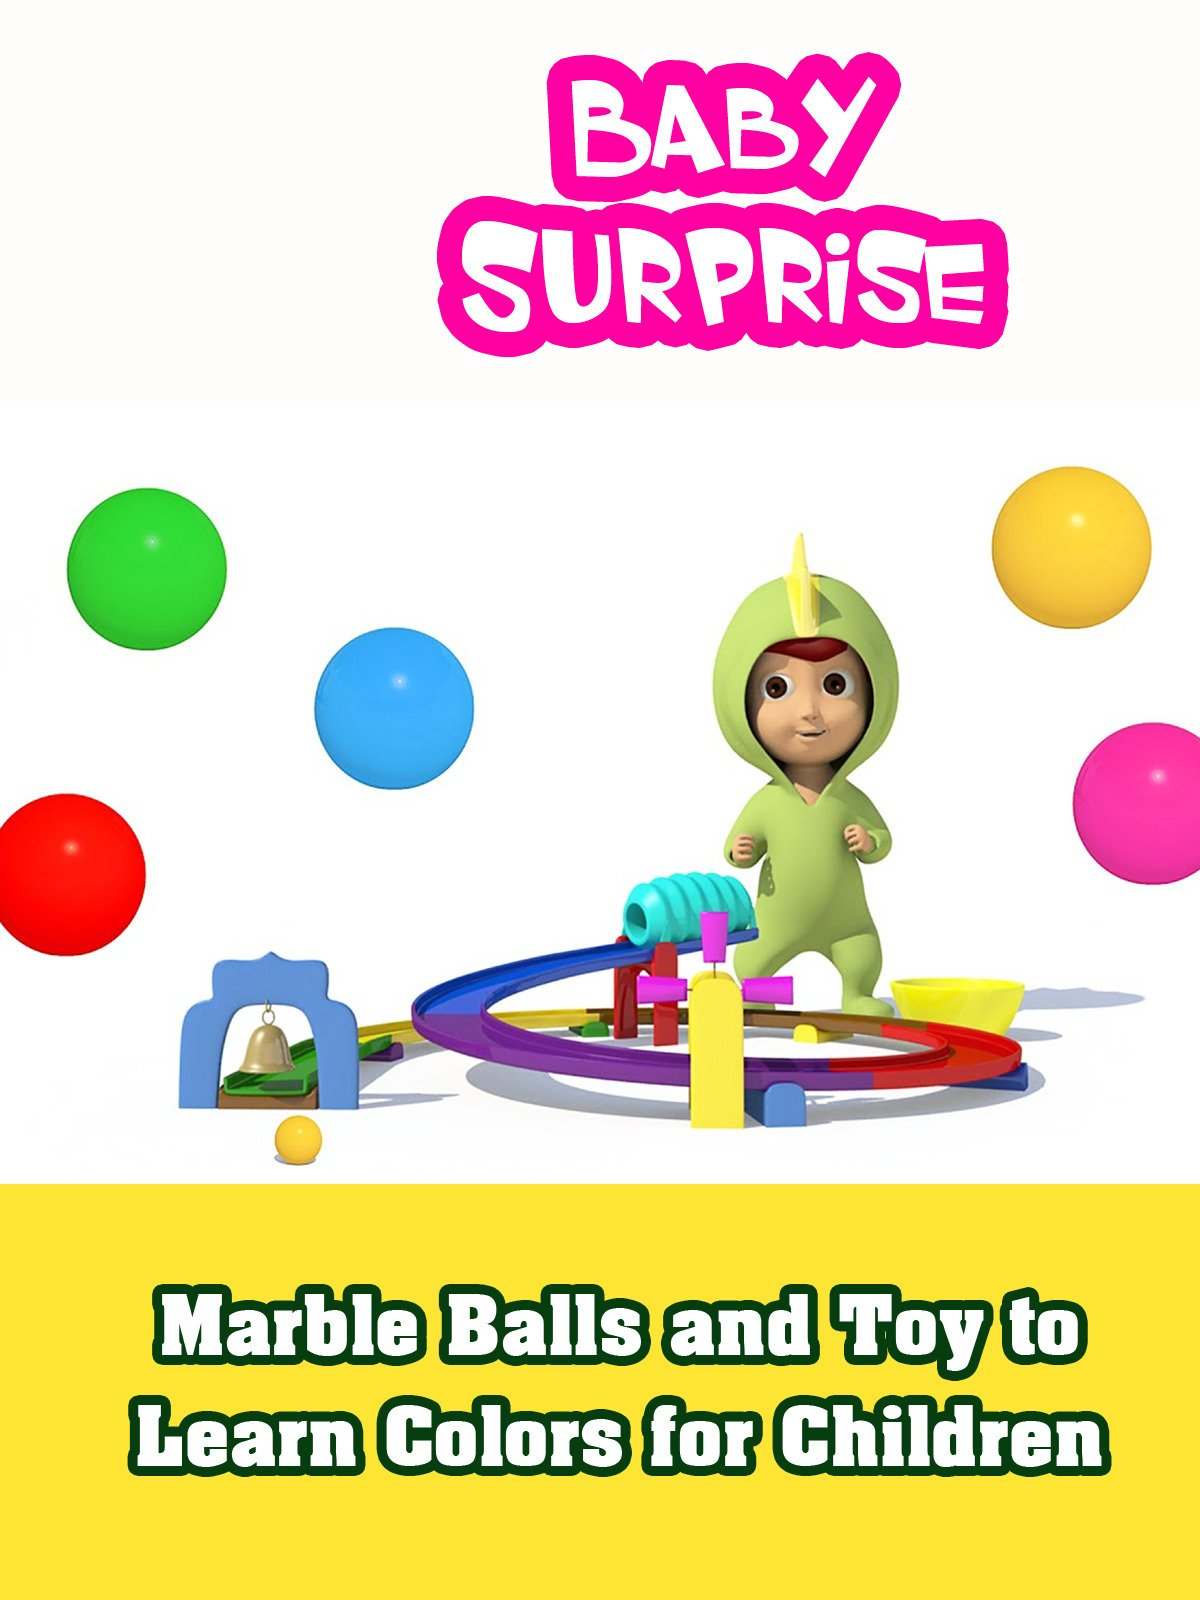 Marble Balls and Toy to Learn Colors for Children